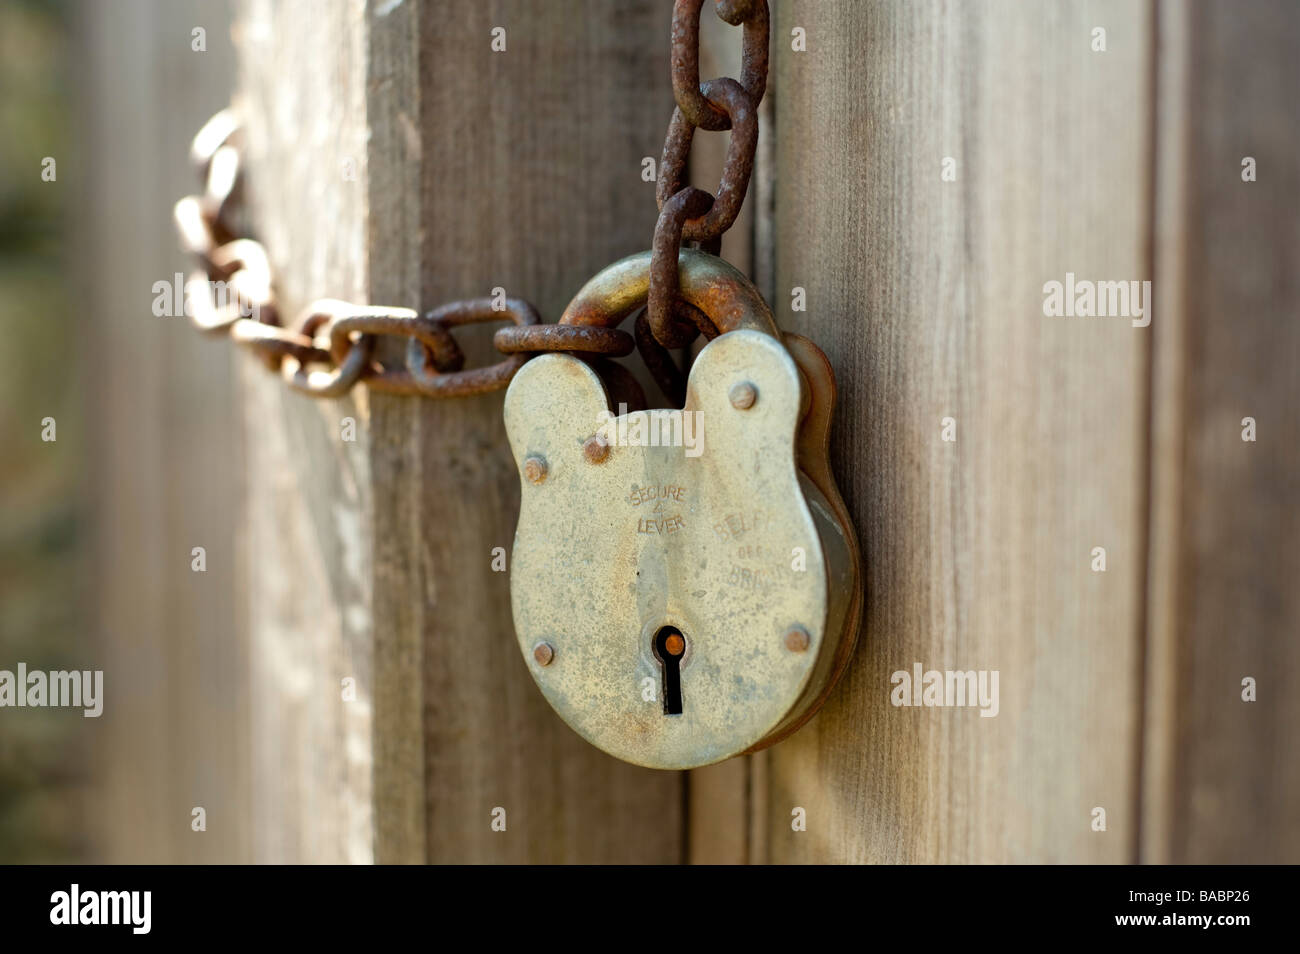 A rusted padlock and chain against a brown door - Stock Image